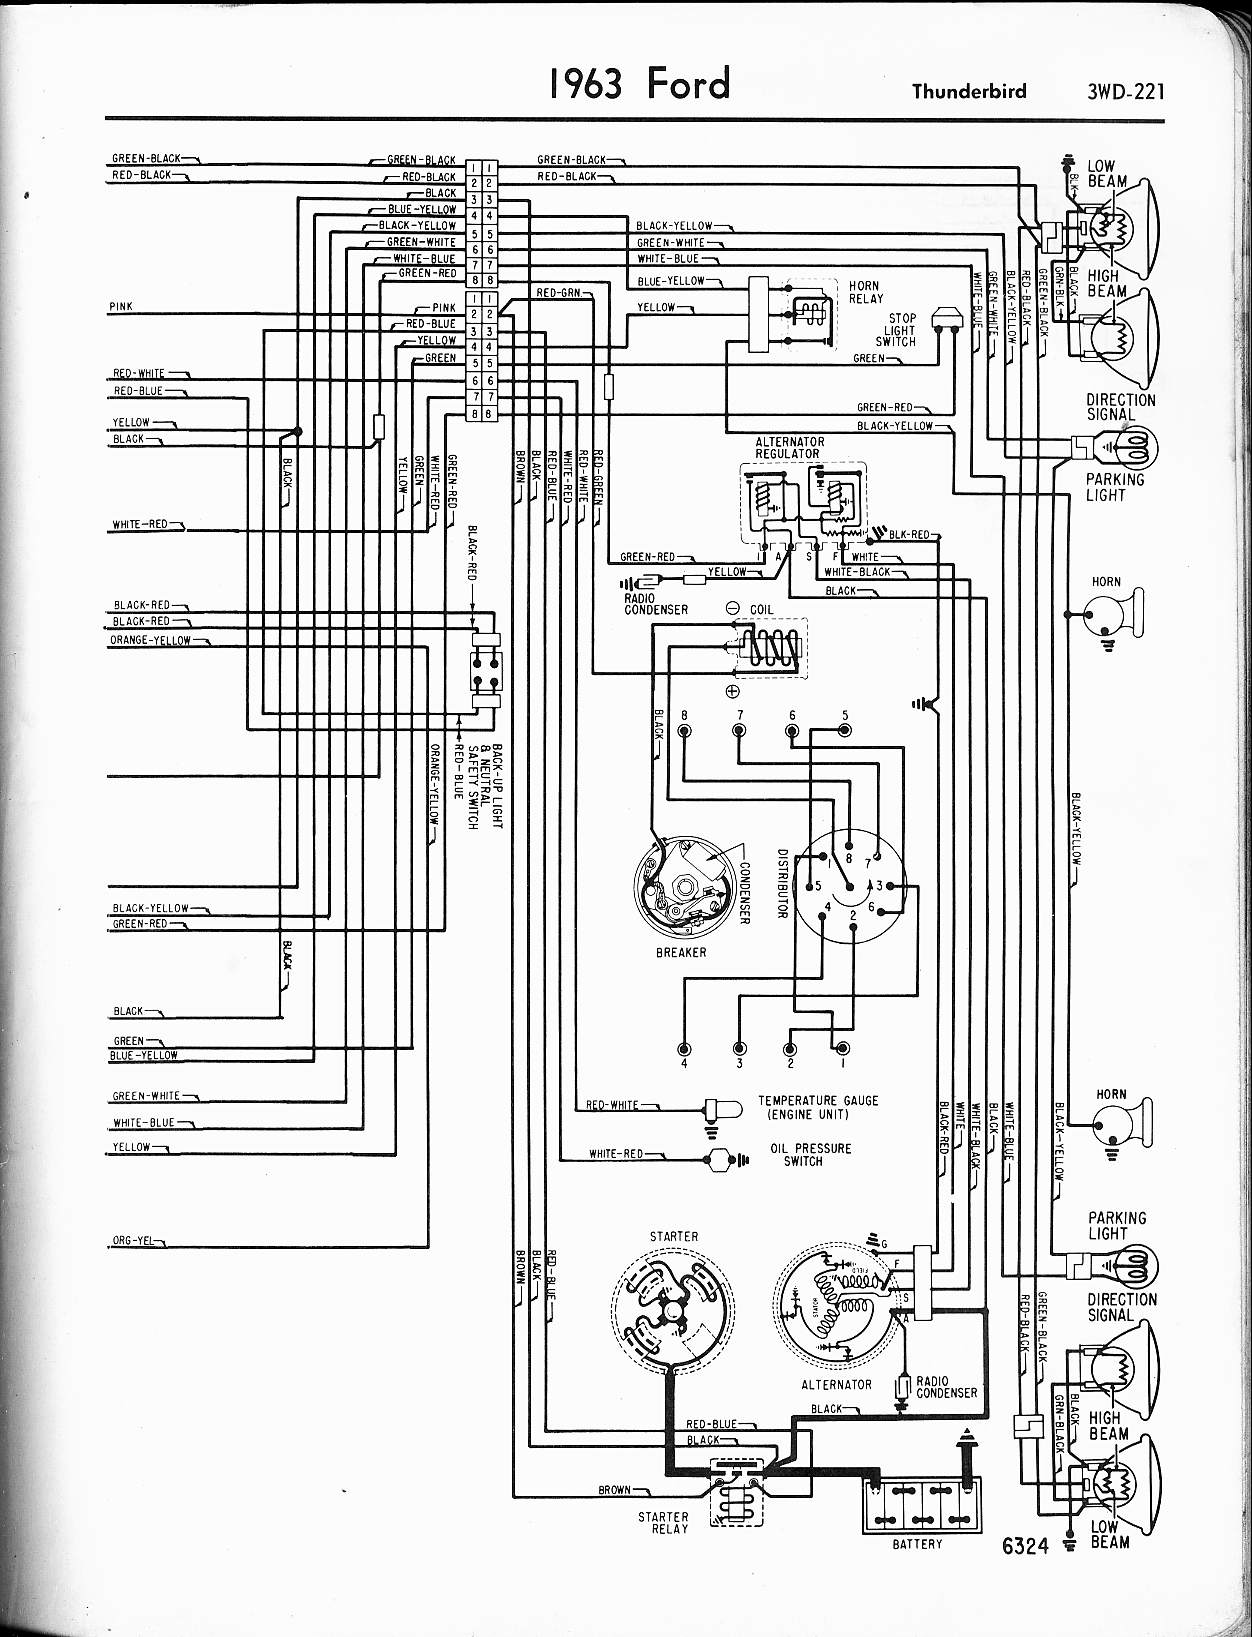 1970 ford ranchero alternator wiring house wiring diagram symbols u2022 rh maxturner co